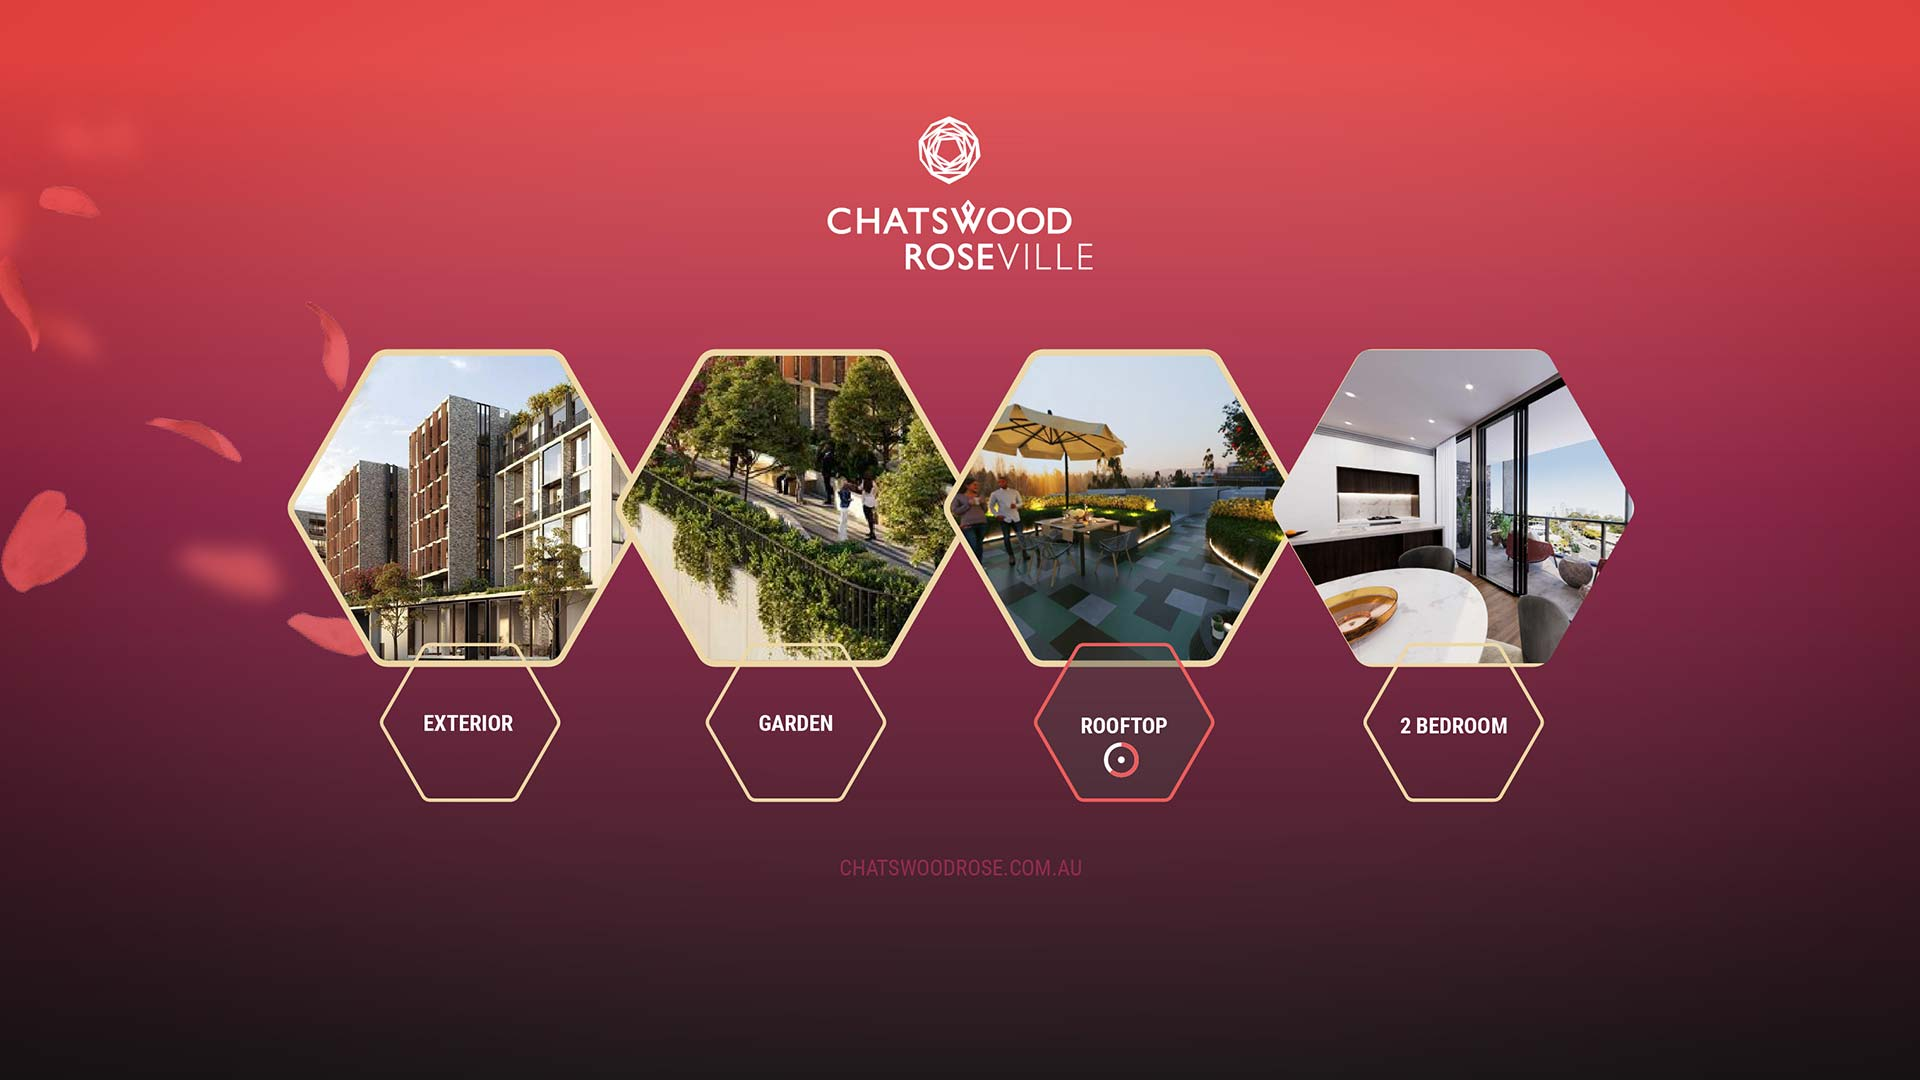 Real Estate VR Image of Chatswood Rose VR by Start Beyond 03